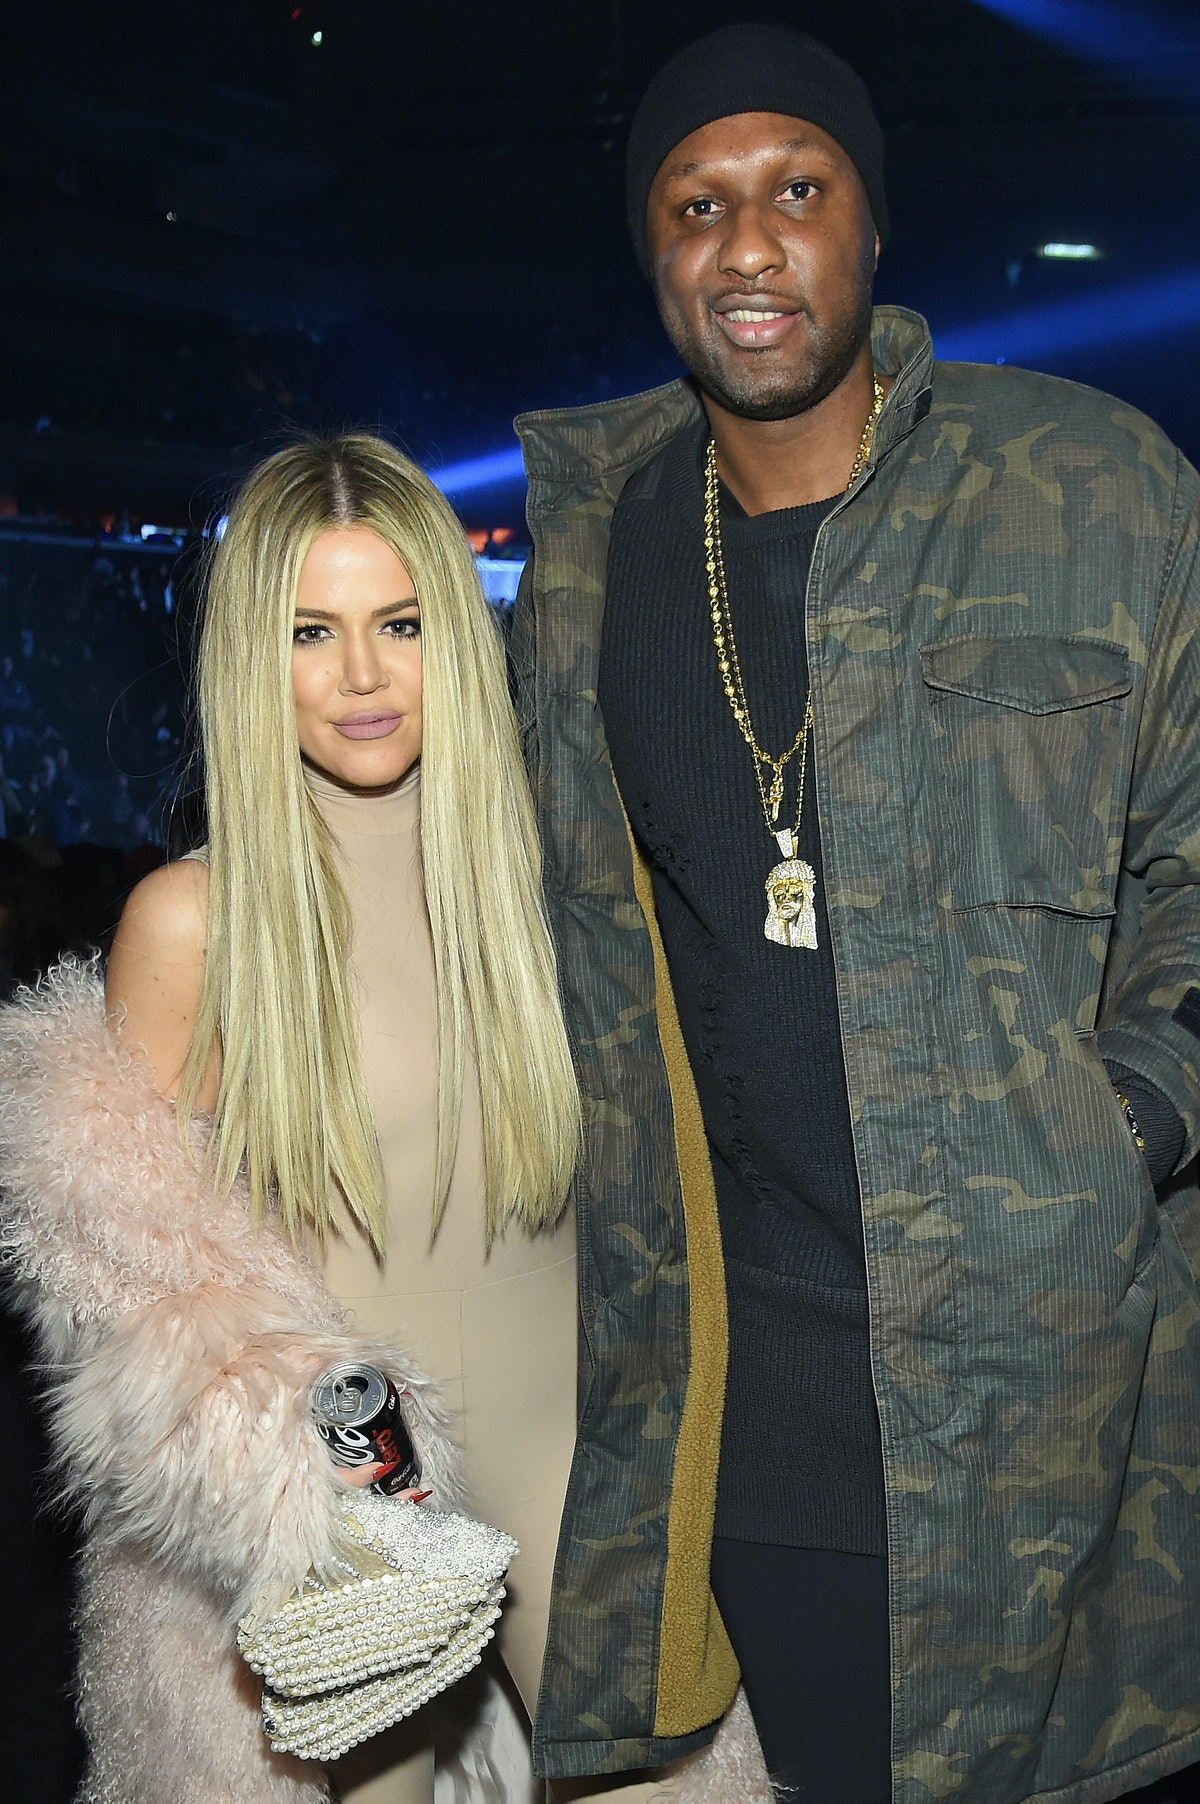 Lamar Odom admitted he wants to get back together with Khloé Kardashian after a recent Instagram incident with Tristan Thompson.